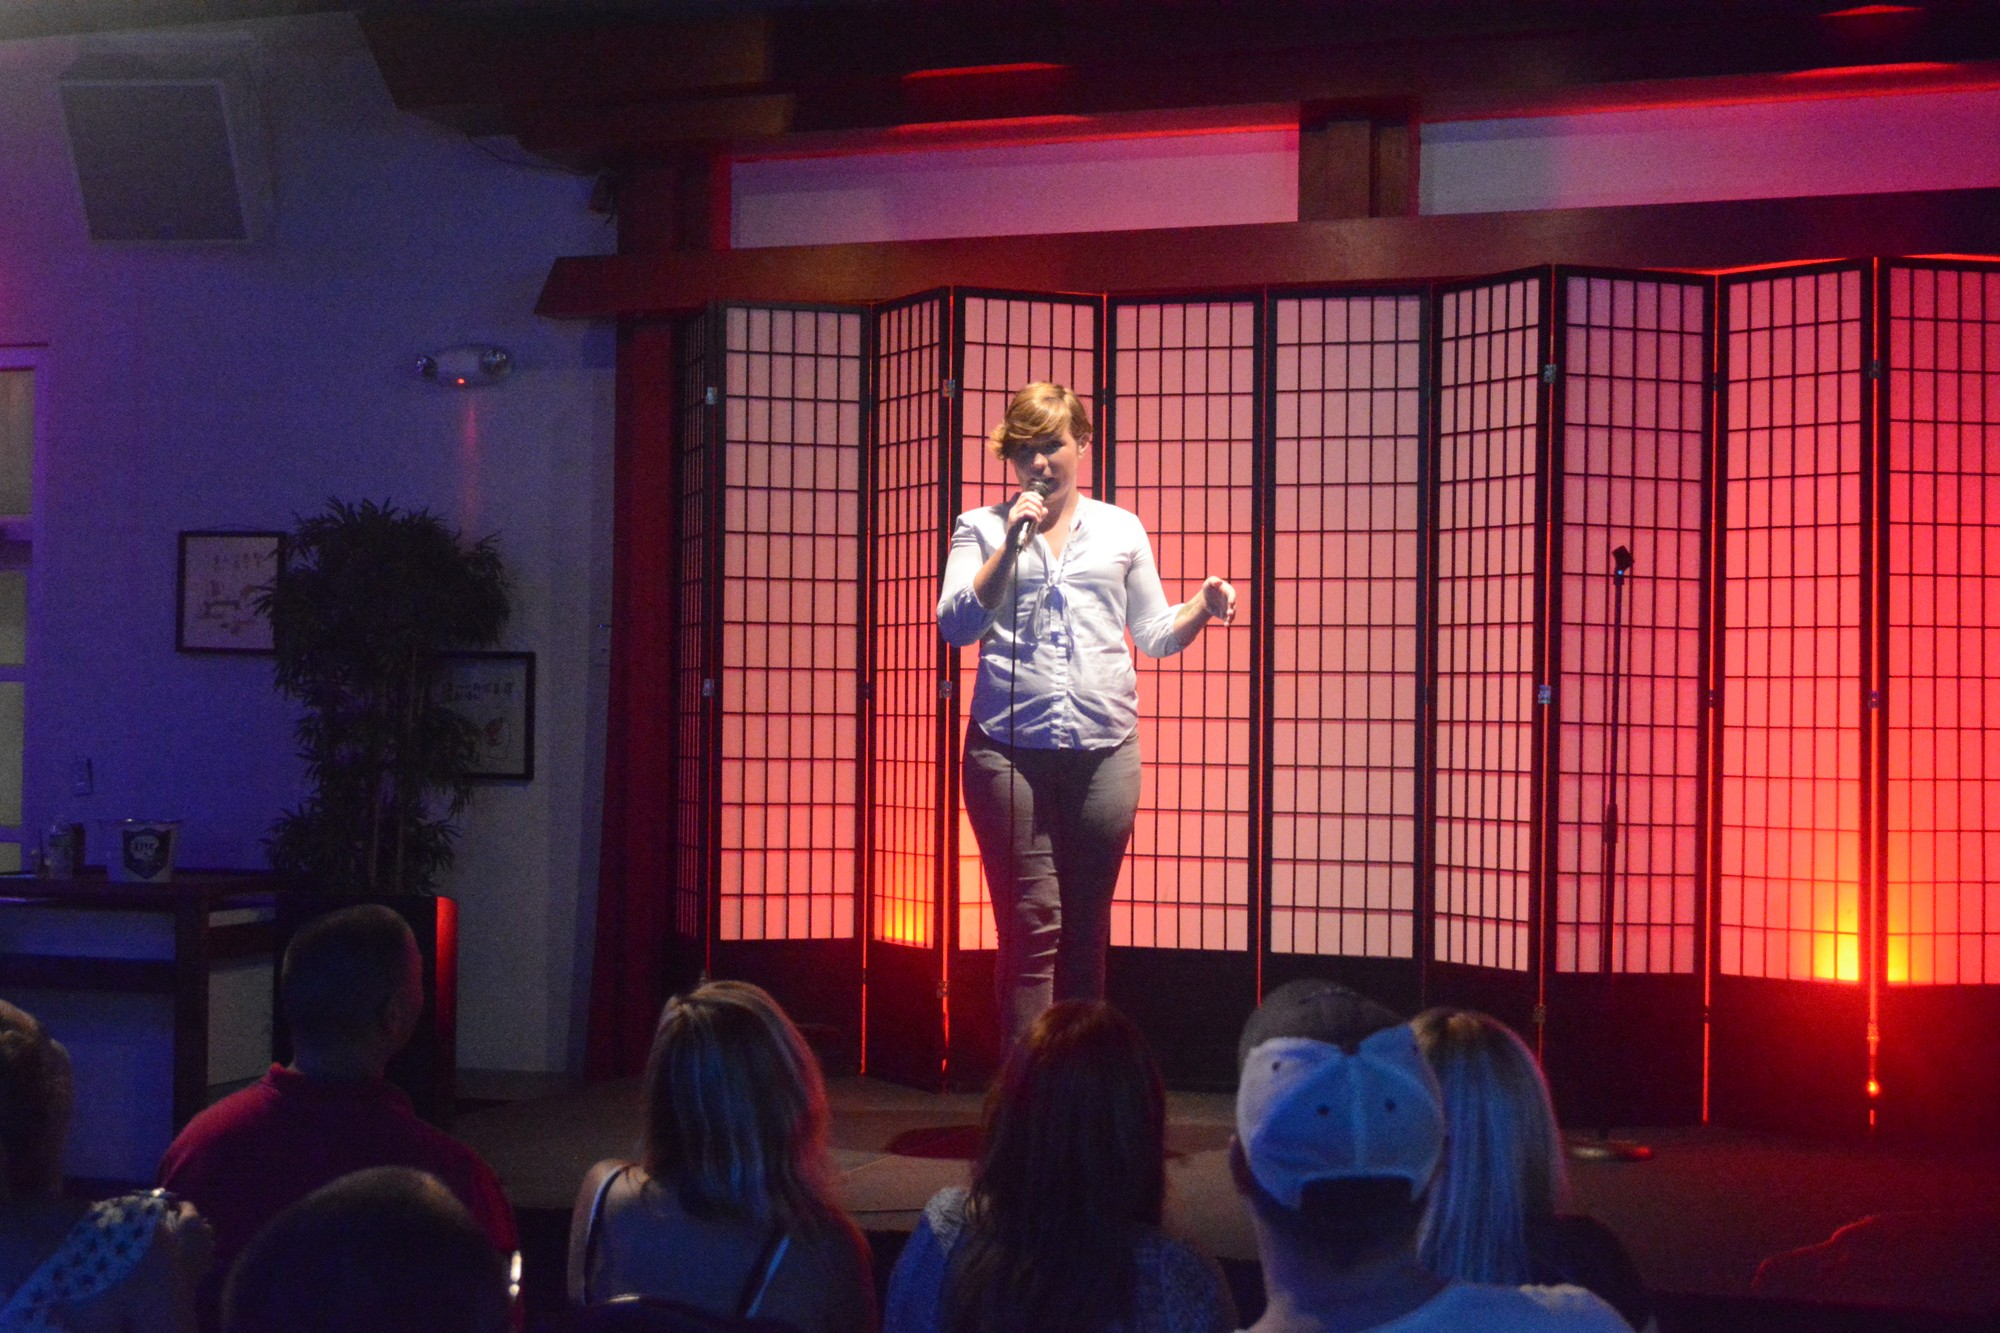 Laura Sanders performing a set at Barcadia. Barcadia has hosted many female comics during their biweekly open-mic events Photo credit: Davis Walden